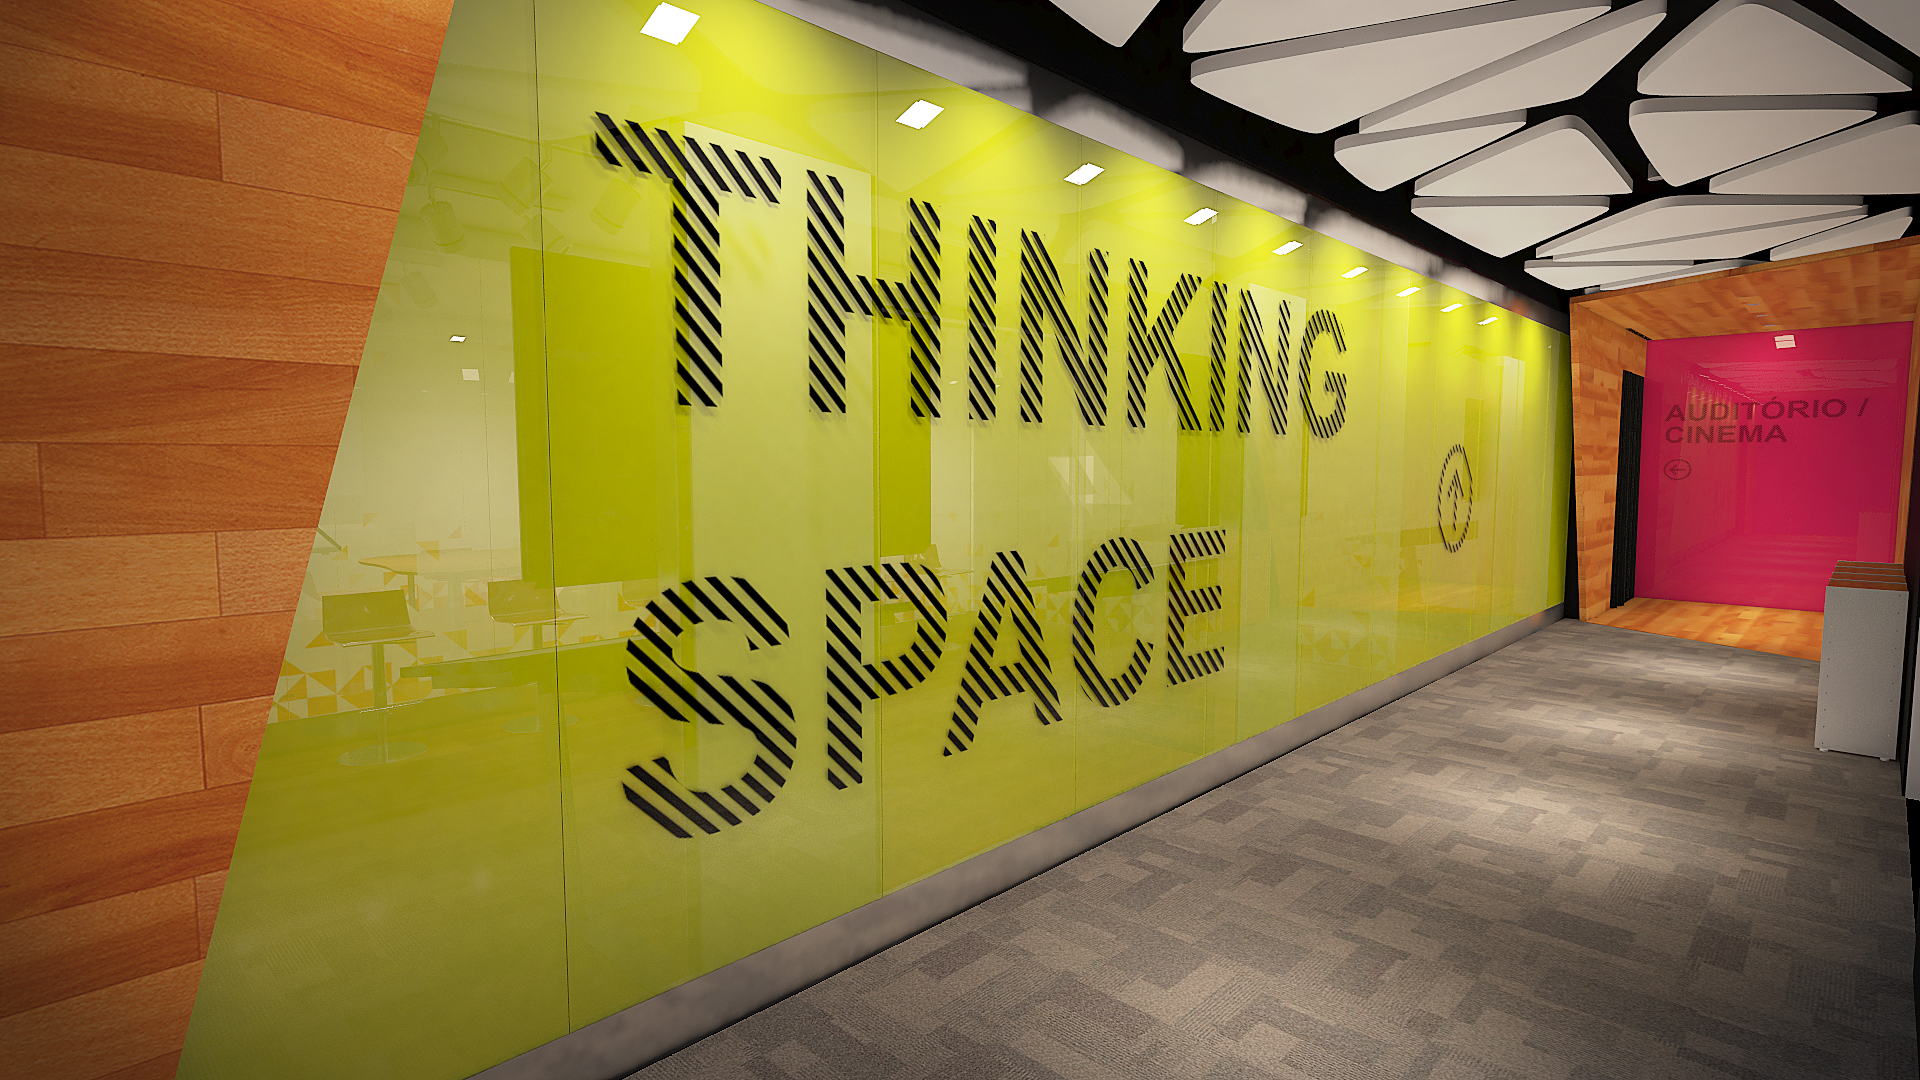 Thinking Space - Acesso